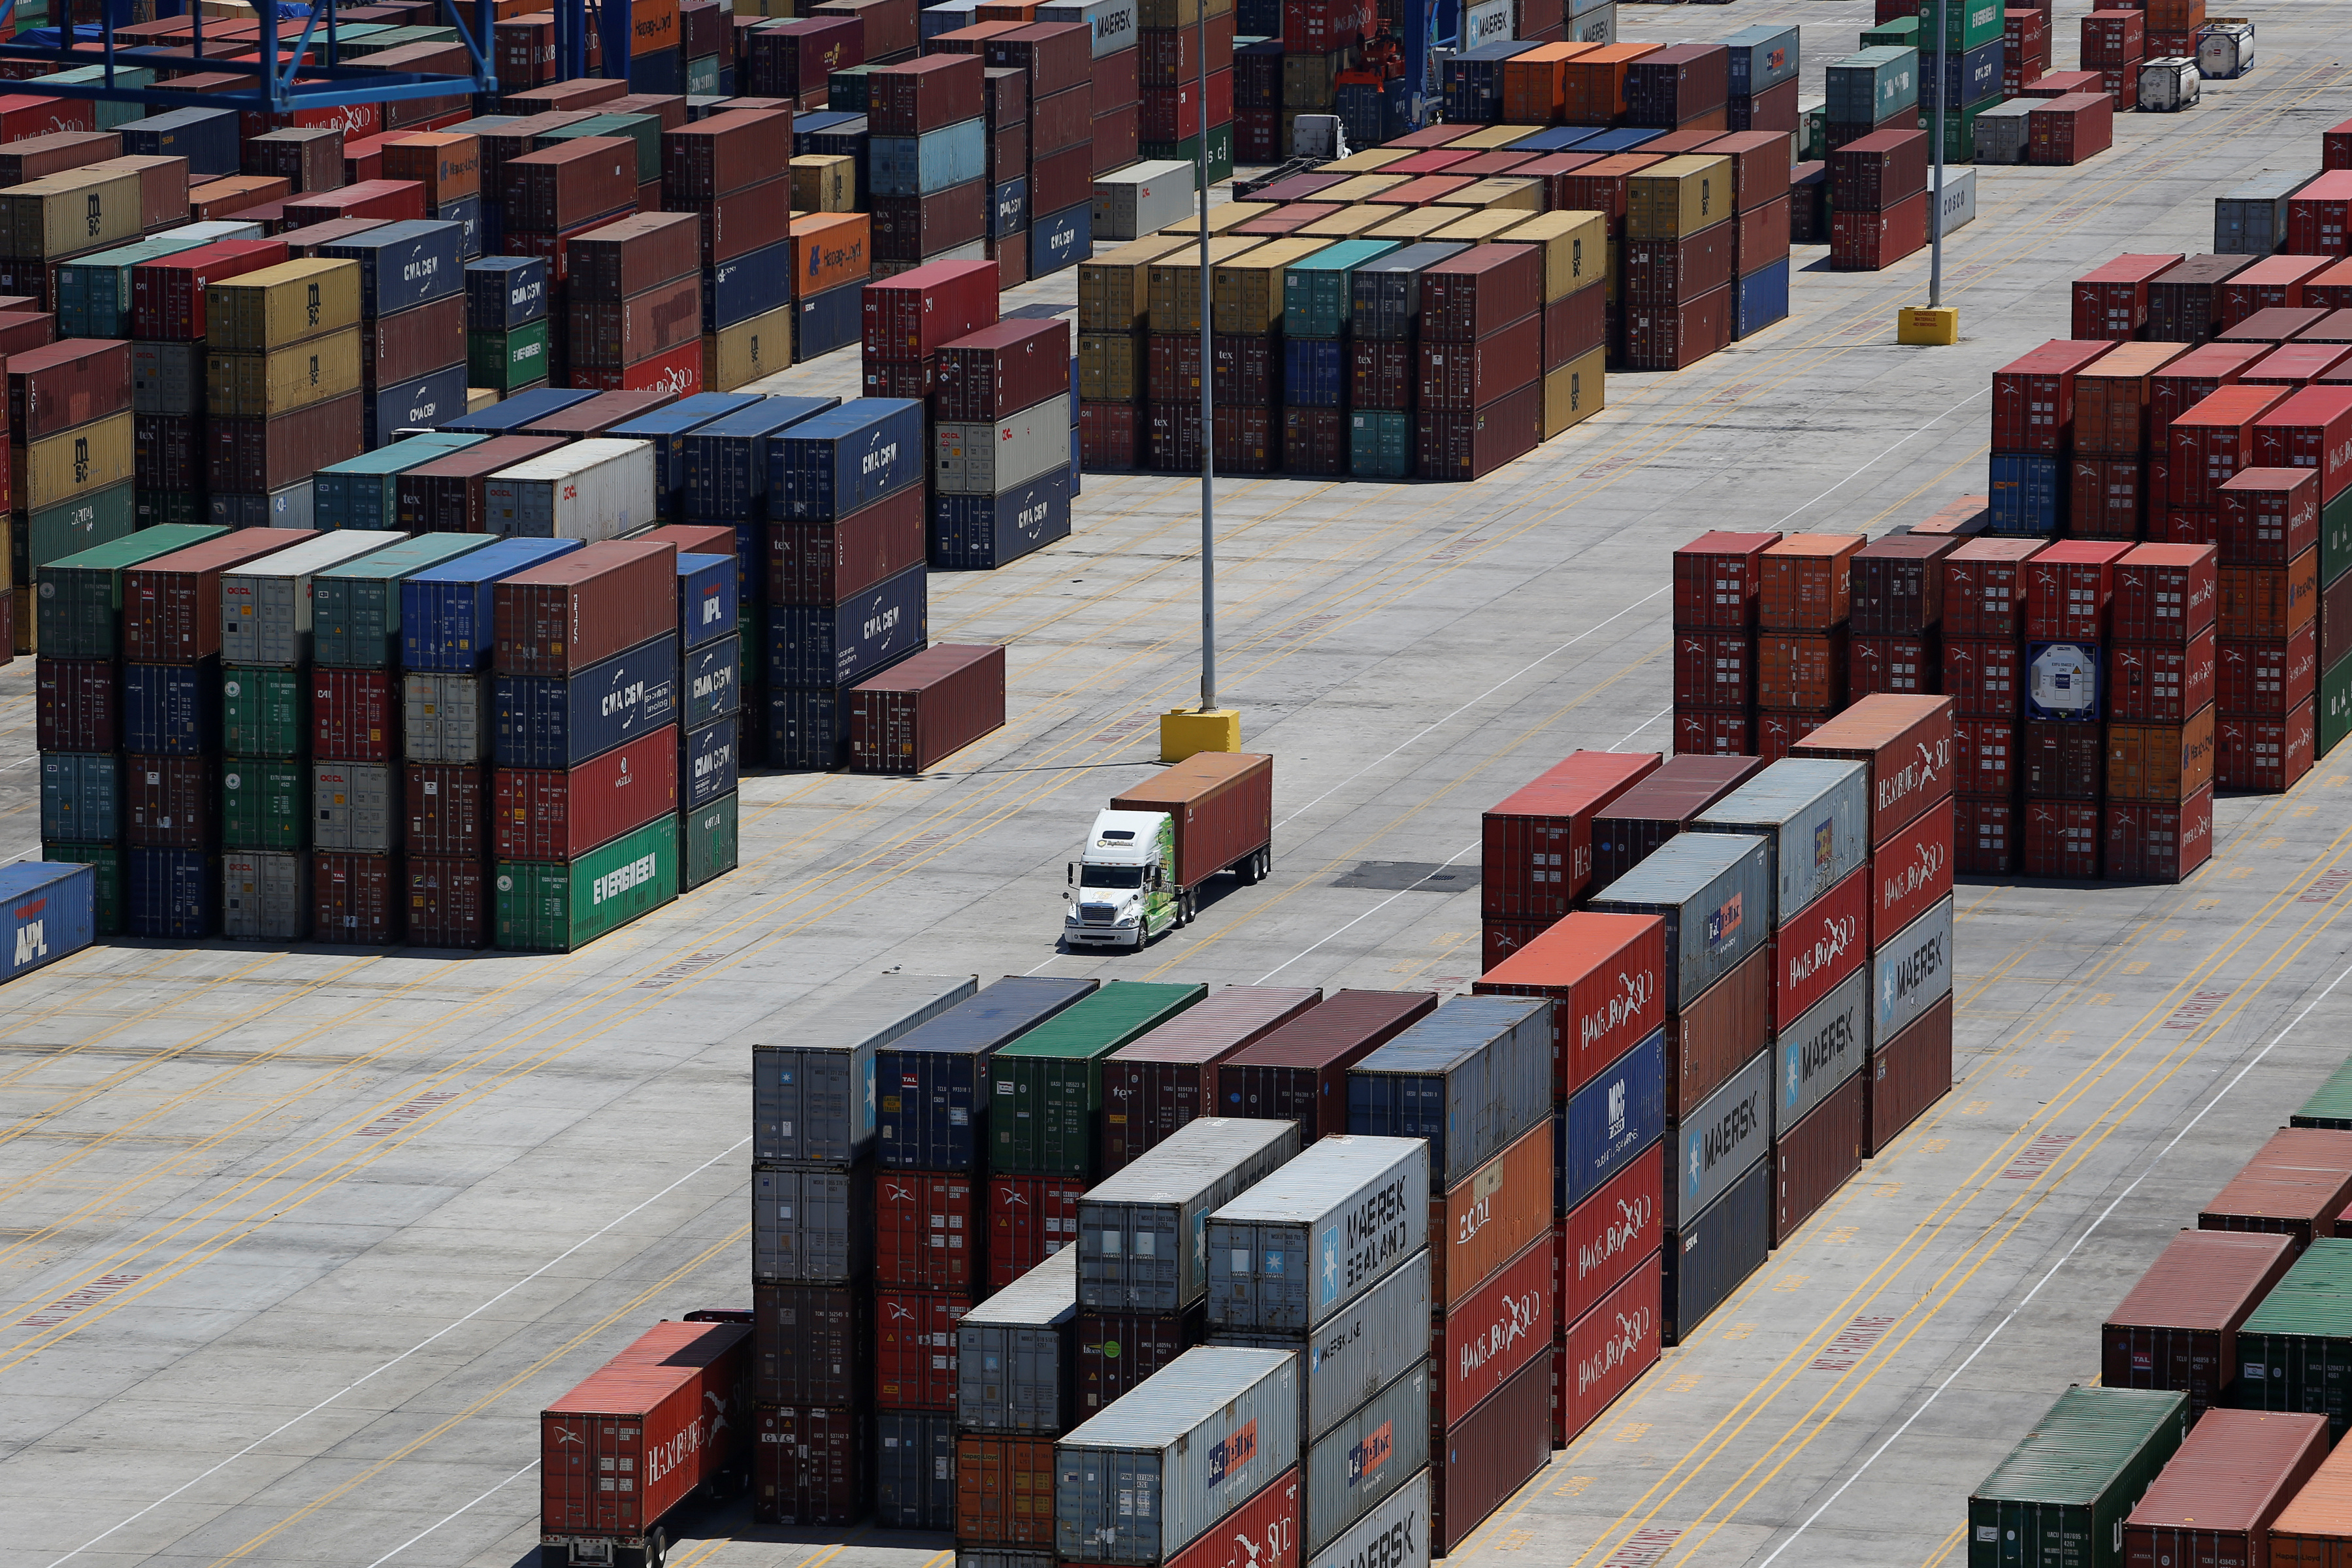 Shipping containers are stacked for storage at Wando Welch Terminal operated by the South Carolina Ports Authority in Mount Pleasant, South Carolina, U.S. May 10, 2018. Picture taken May 10, 2018. REUTERS/Randall Hill